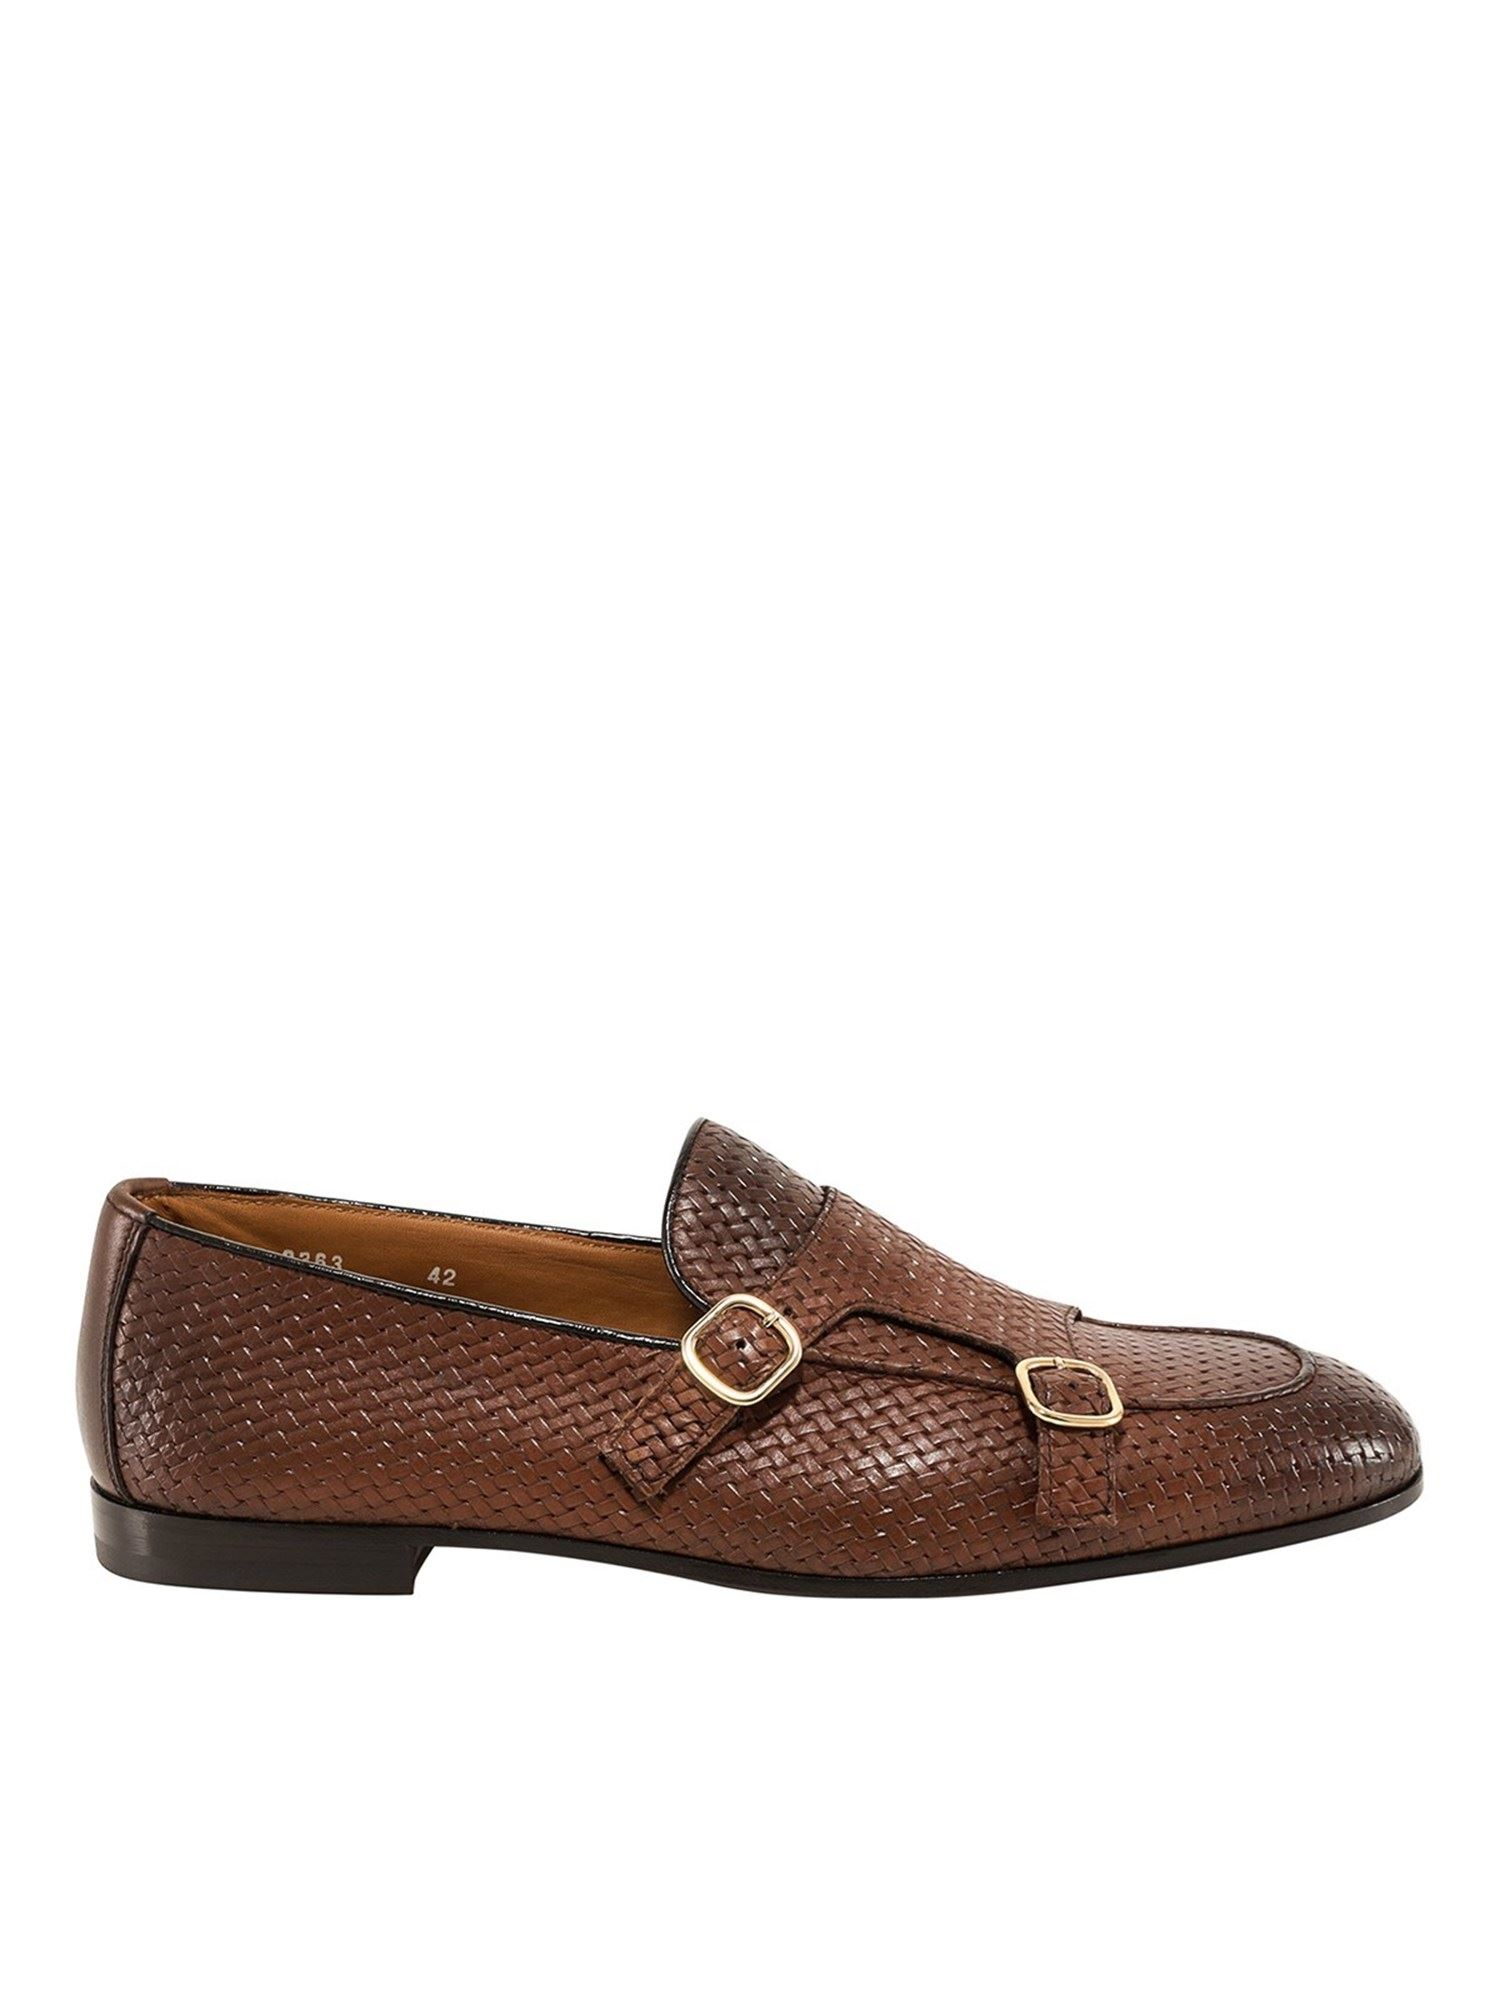 Doucal's Loafers WOVEN NAPPA LOAFERS IN BROWN